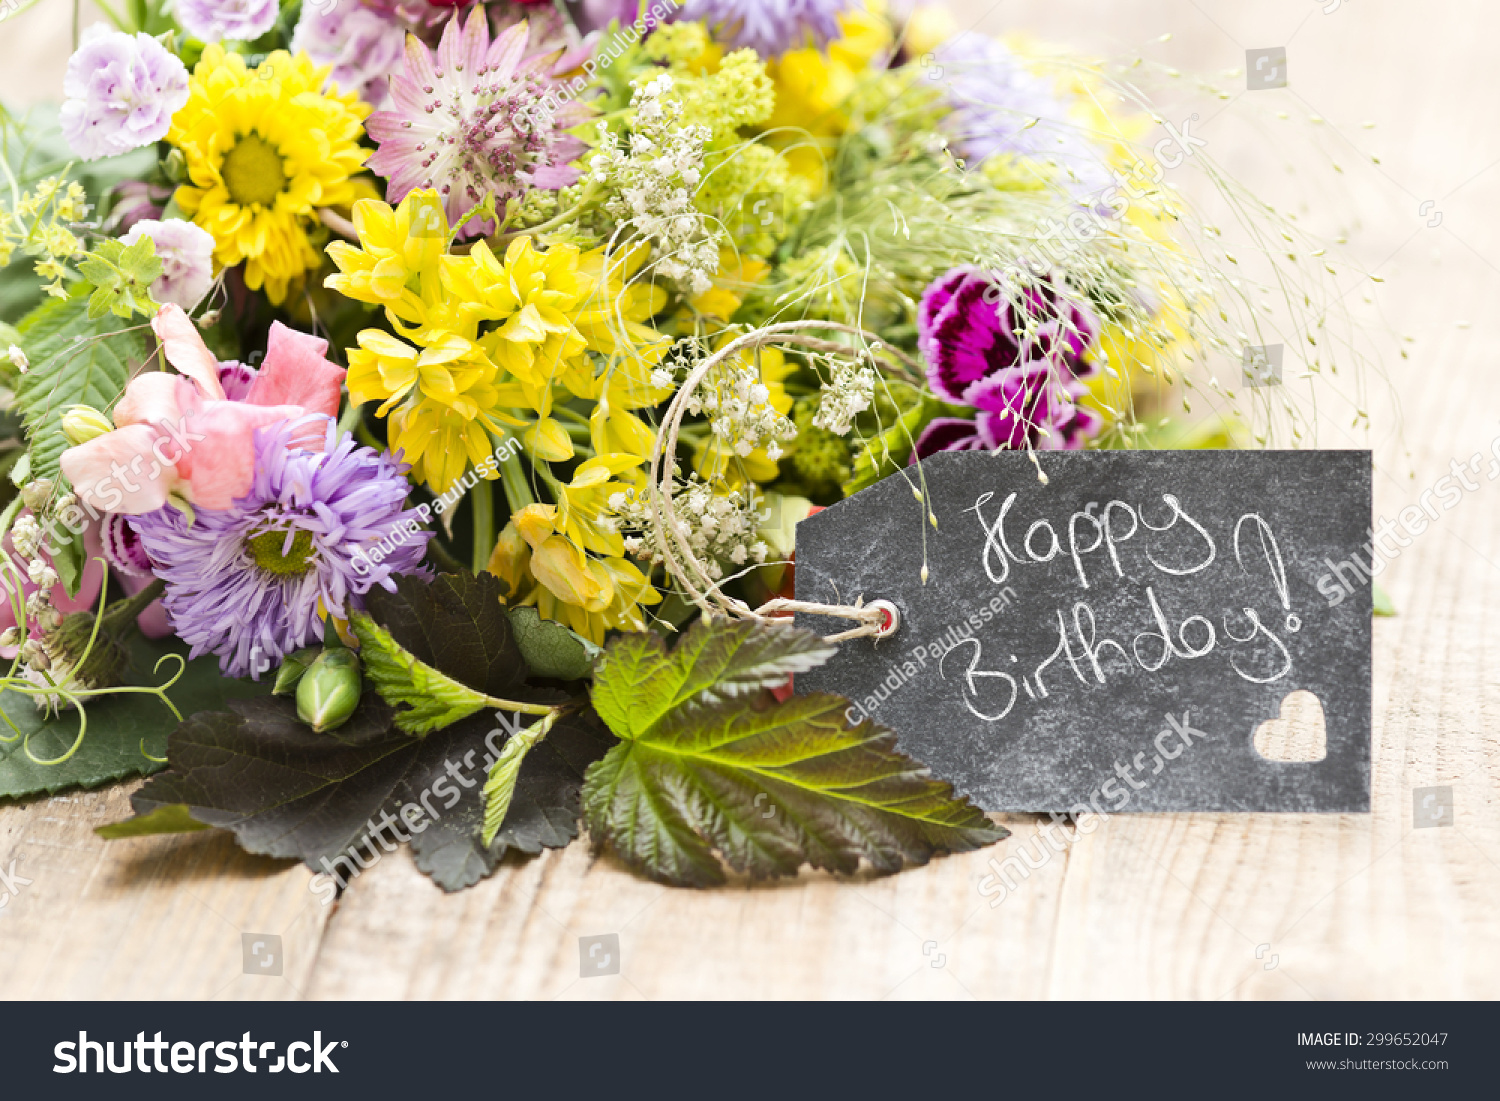 Bouquet flowers tag saying happy birthday stock photo edit now a bouquet of flowers with a tag saying happy birthday izmirmasajfo